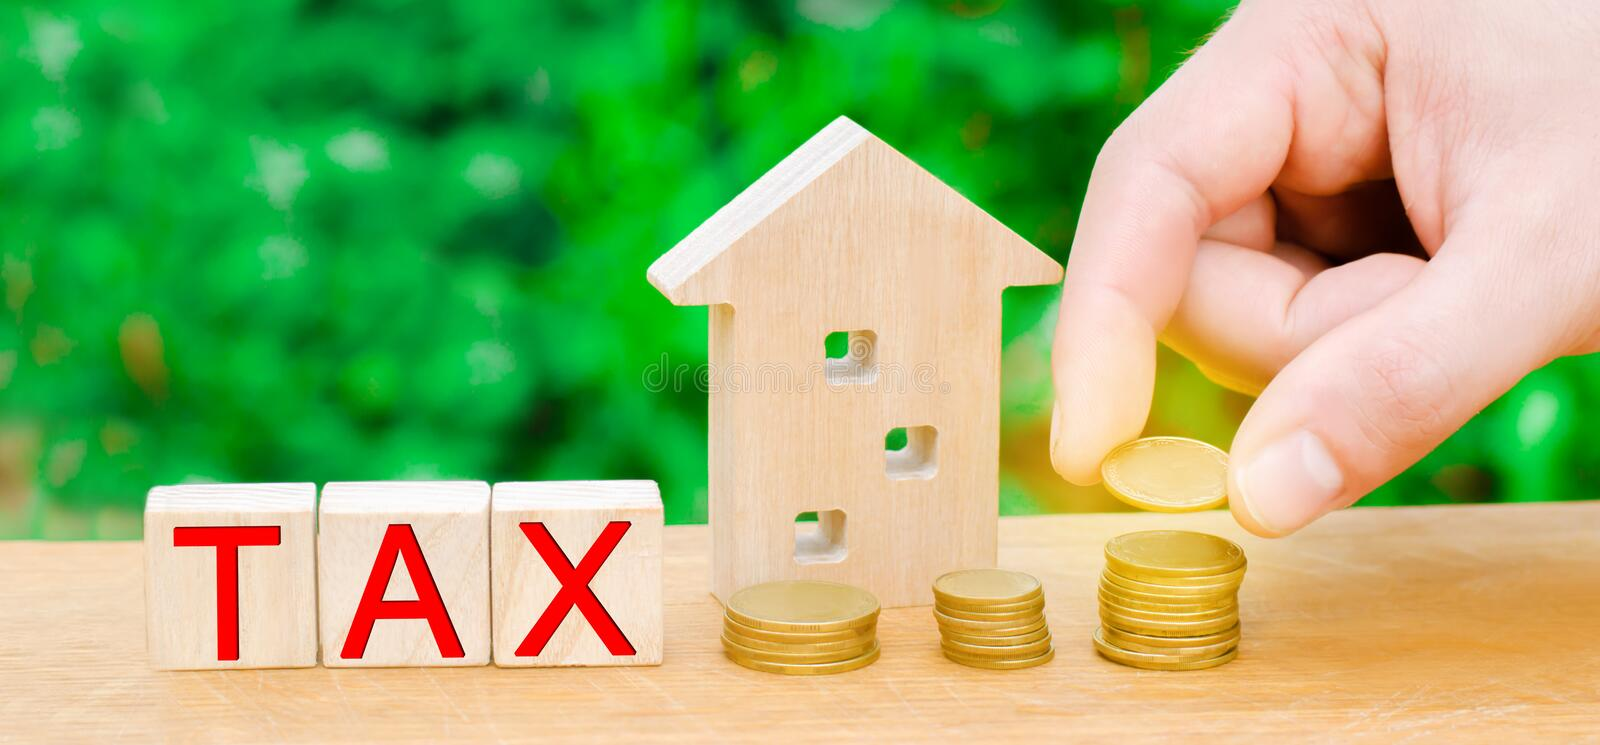 The concept of paying taxes on property and real estate. Saving money. House tax and risks. Hand puts a coin in a pile. Mortgage t. Ax royalty free stock photos